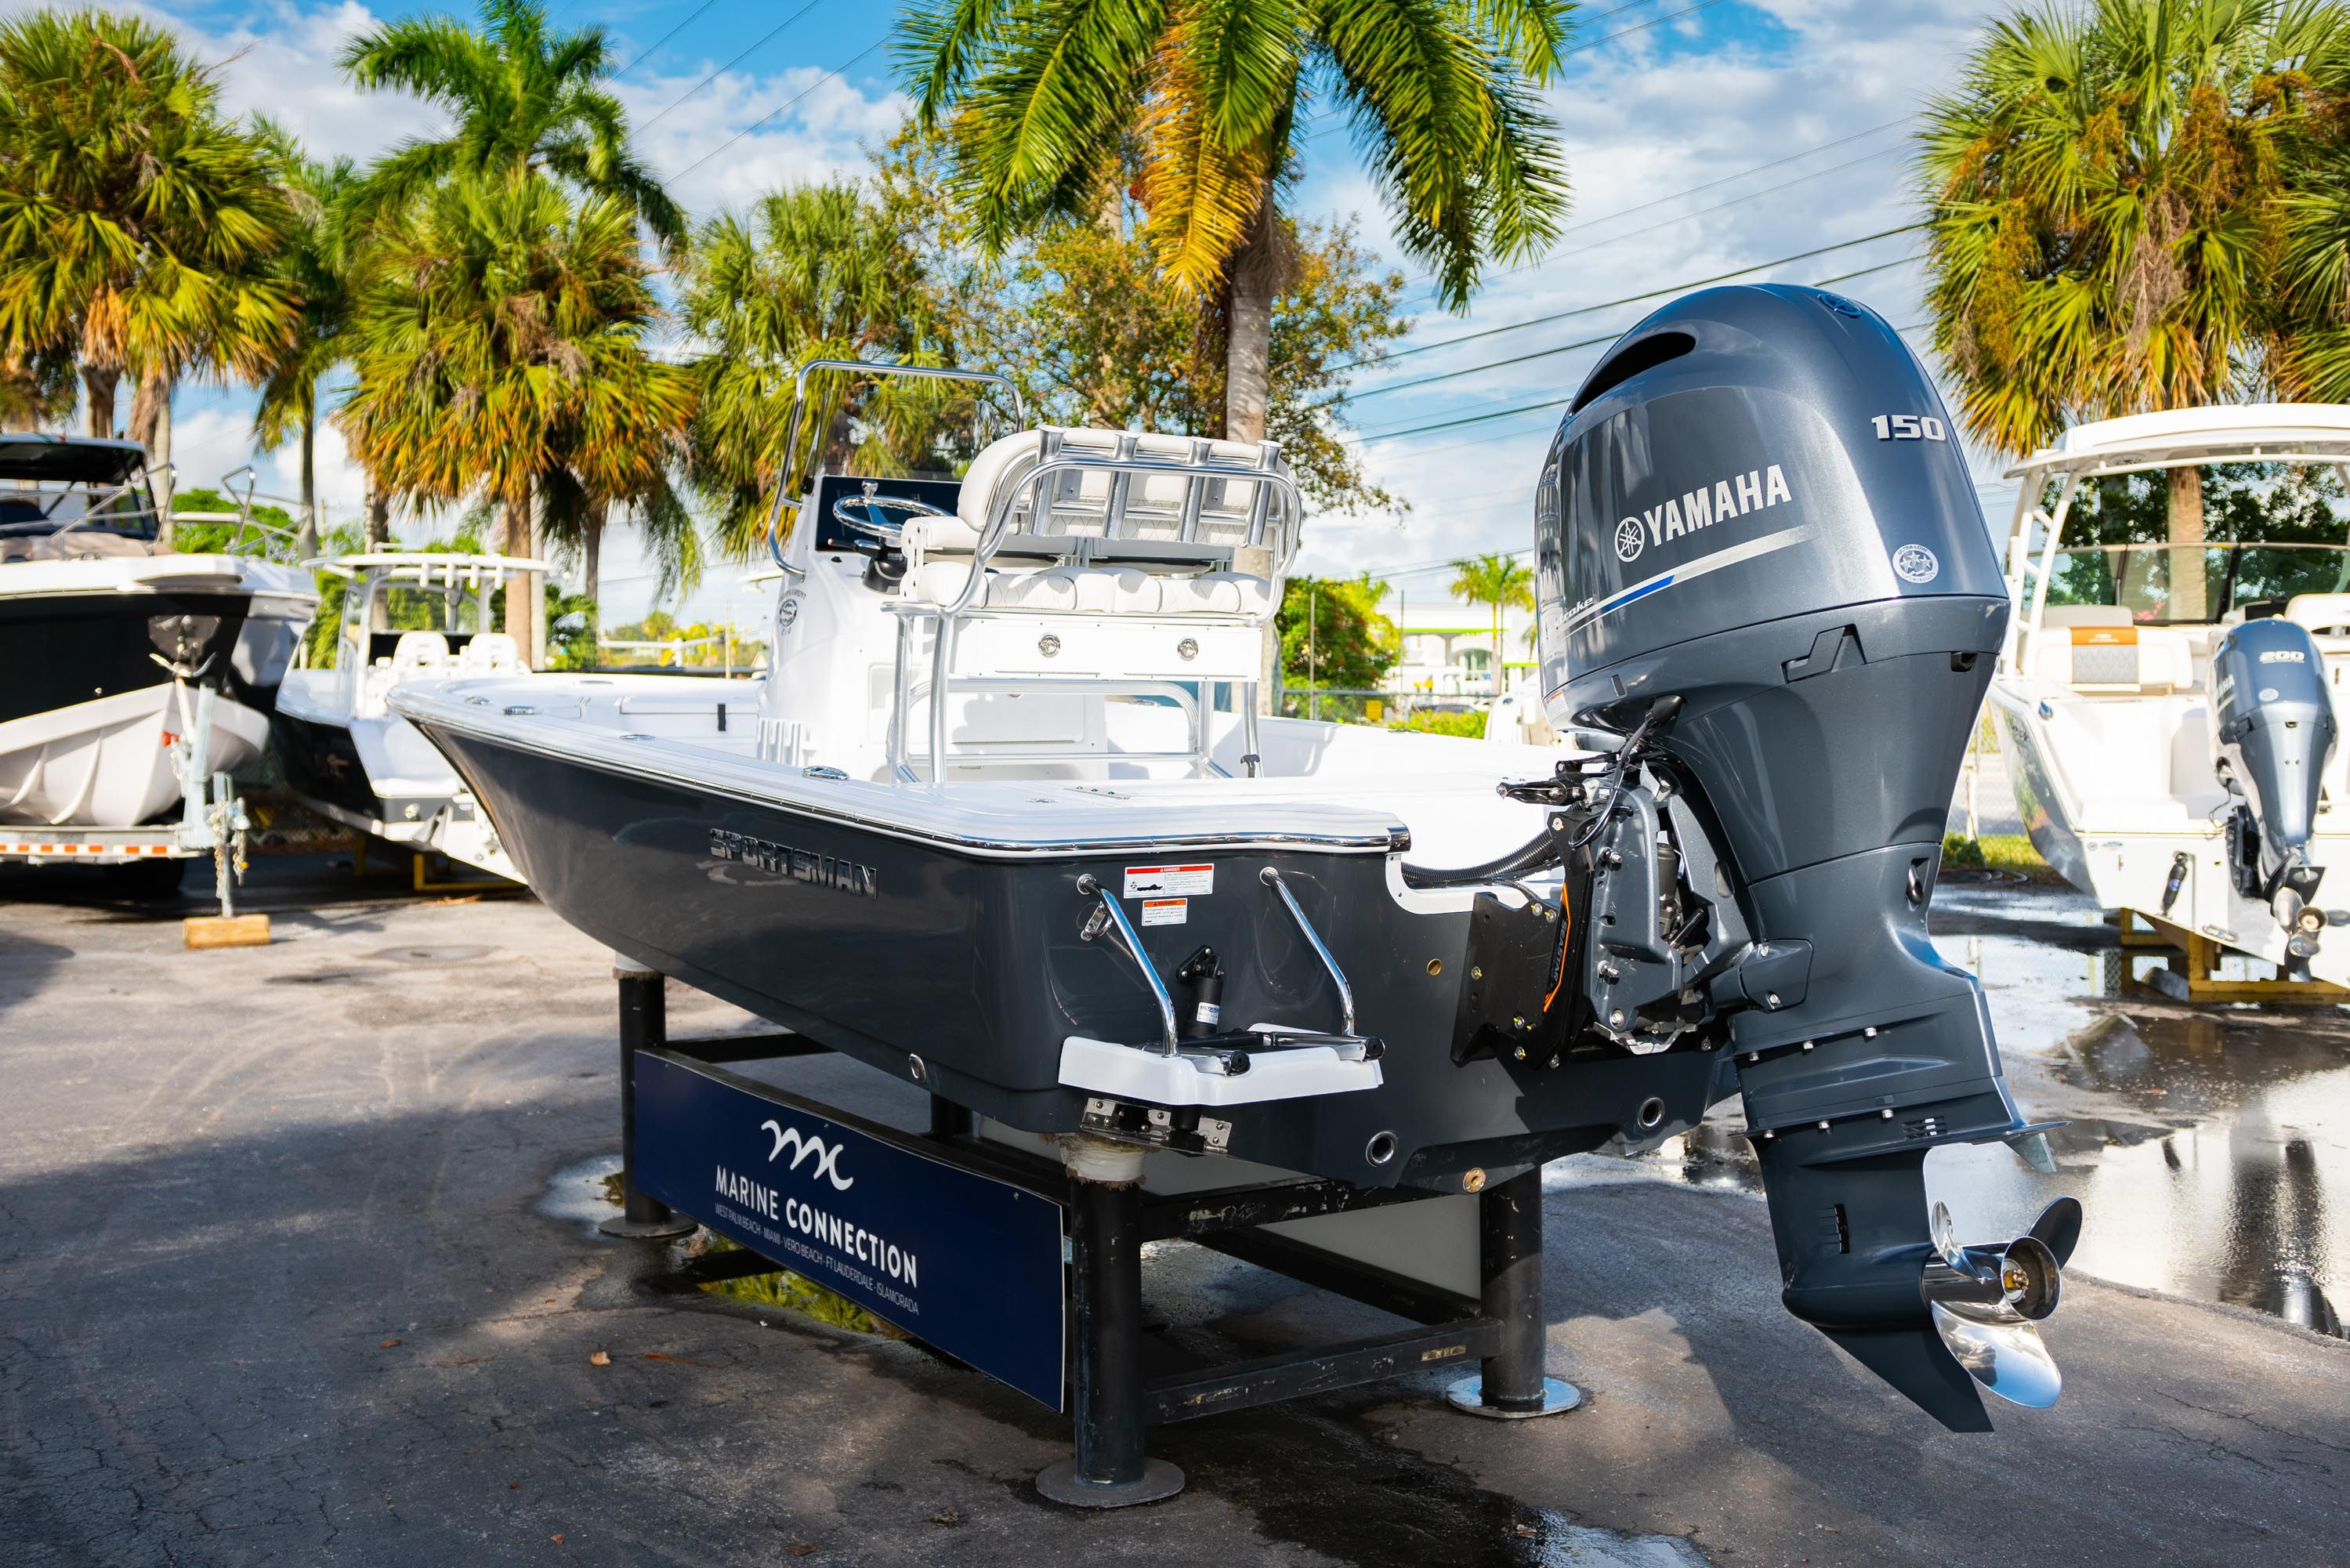 Thumbnail 5 for New 2020 Sportsman Tournament 214 Bay Boat boat for sale in West Palm Beach, FL